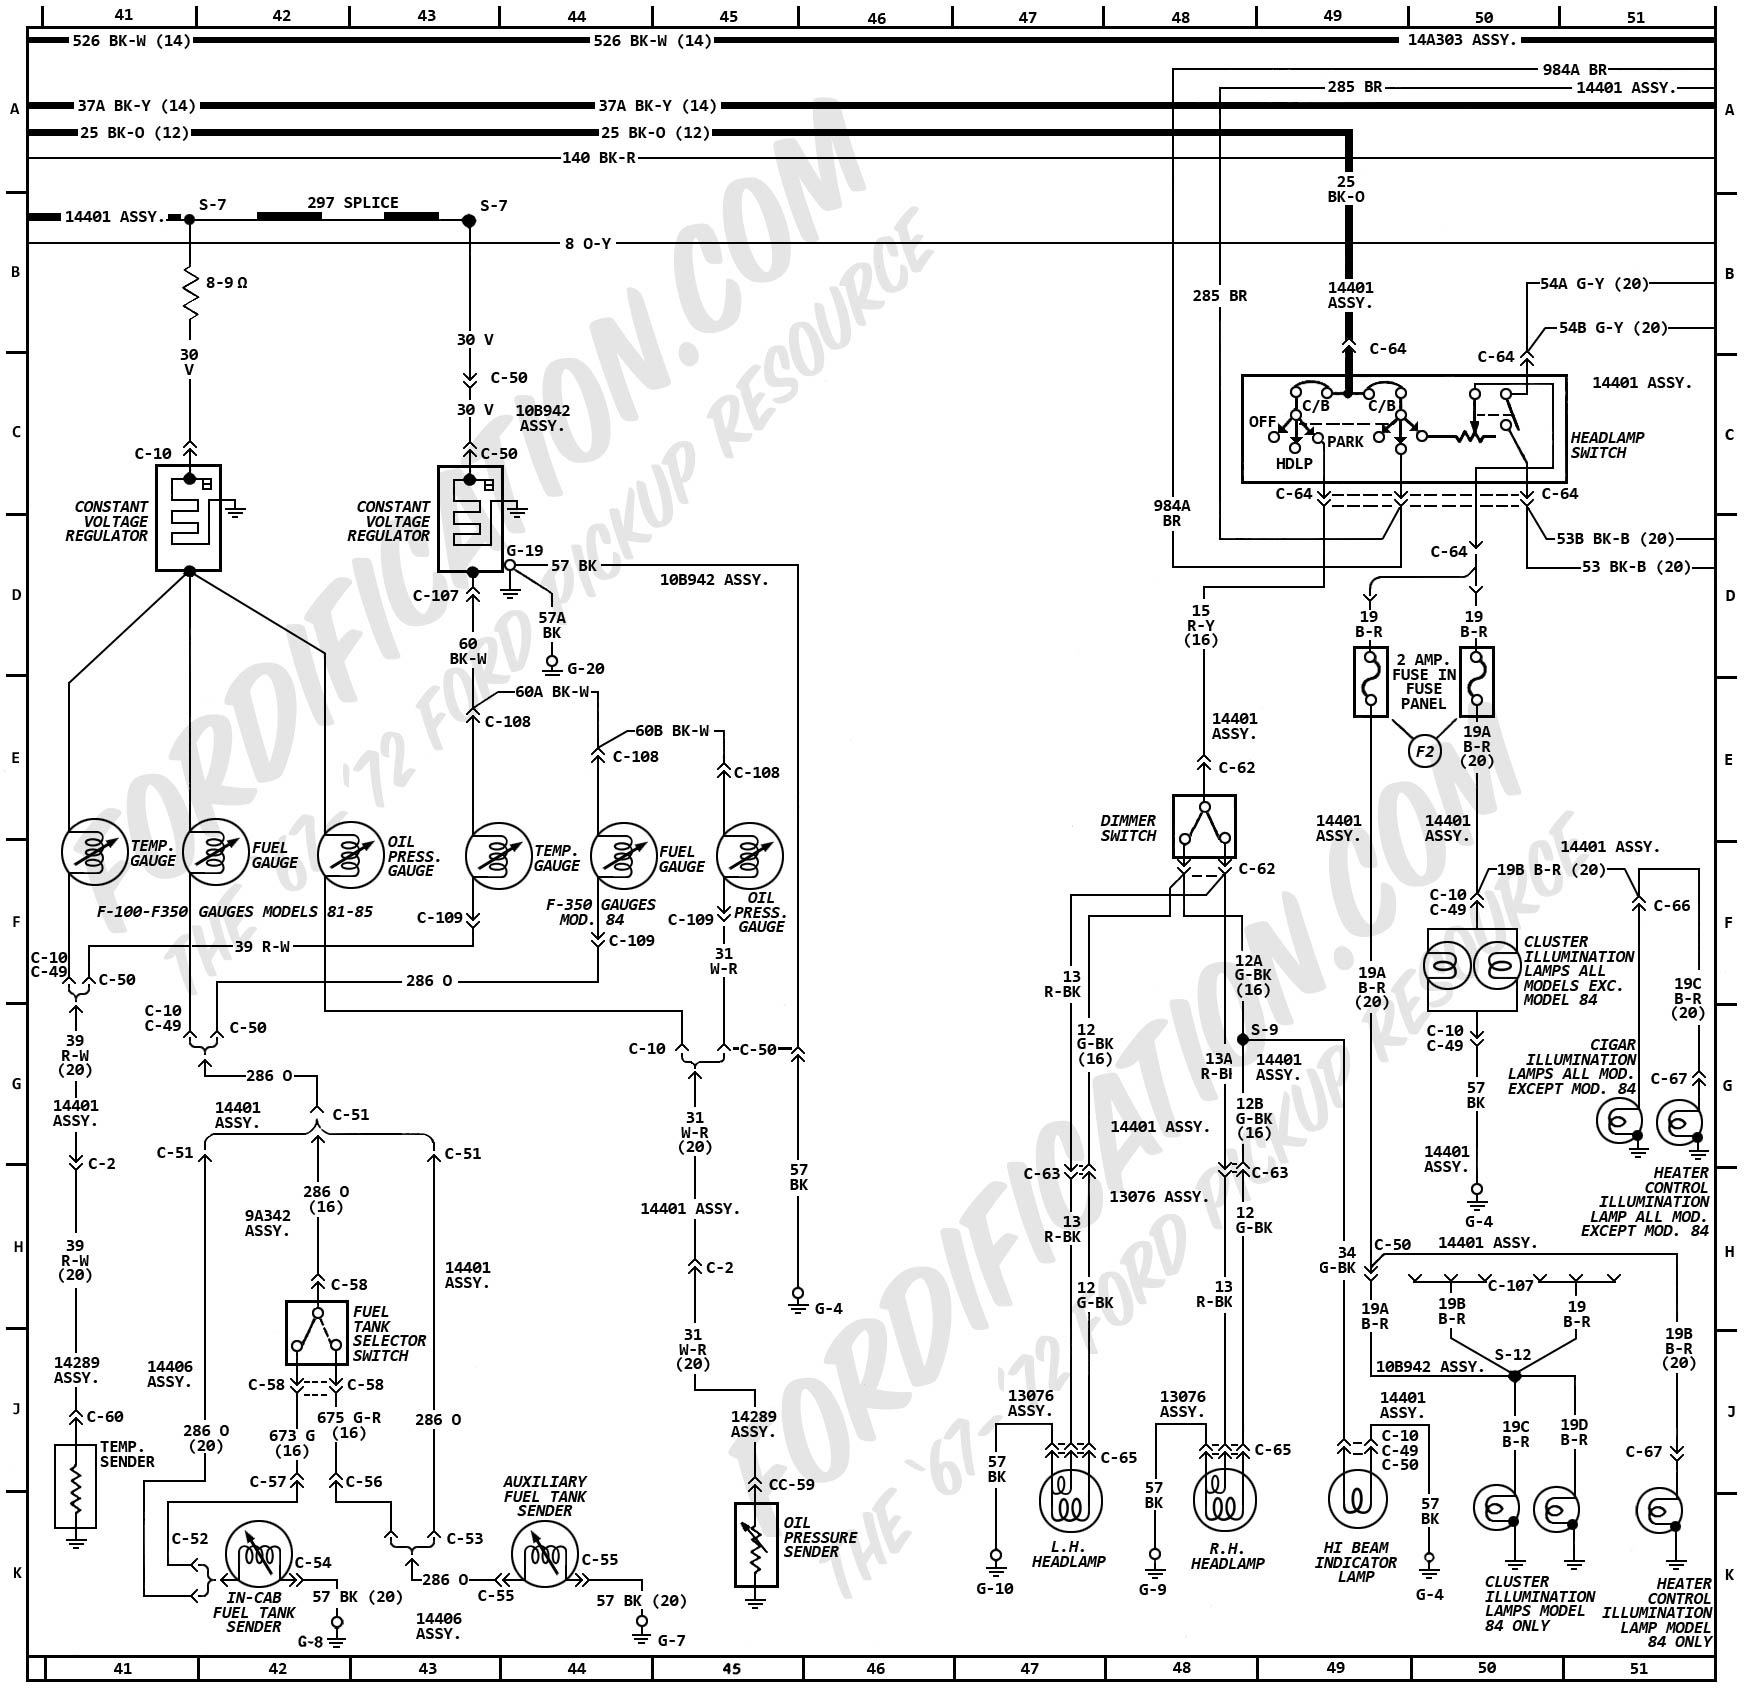 ford wiring harness diagram 2008 ford wiring harness diagram 1972 ford truck wiring diagrams - fordification.com #4